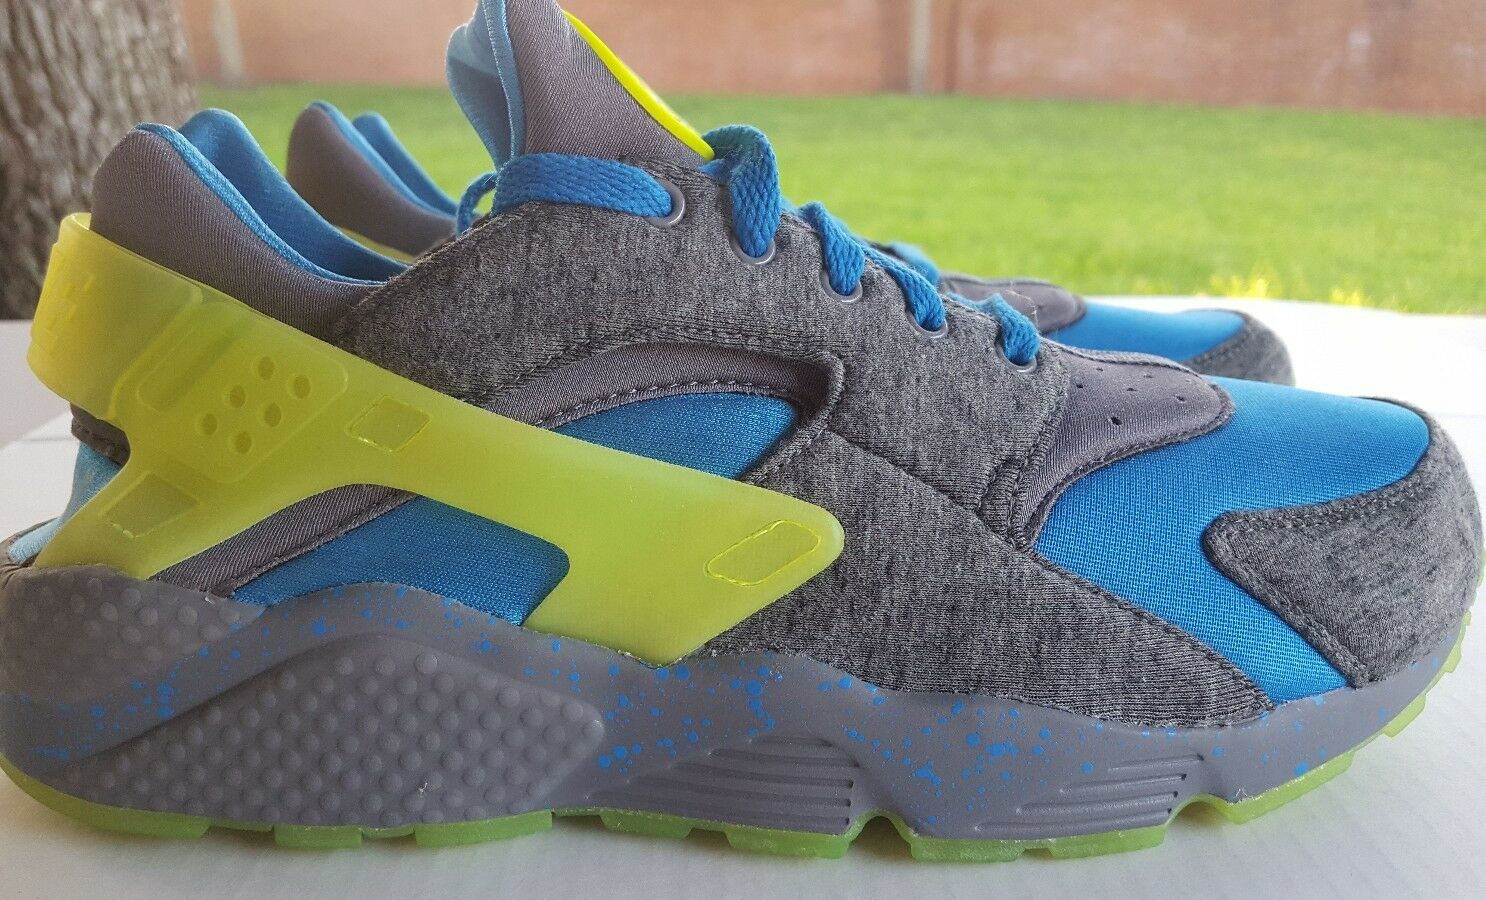 NIKE AIR HUARACHE RUN ID SIZE 12 777330-995